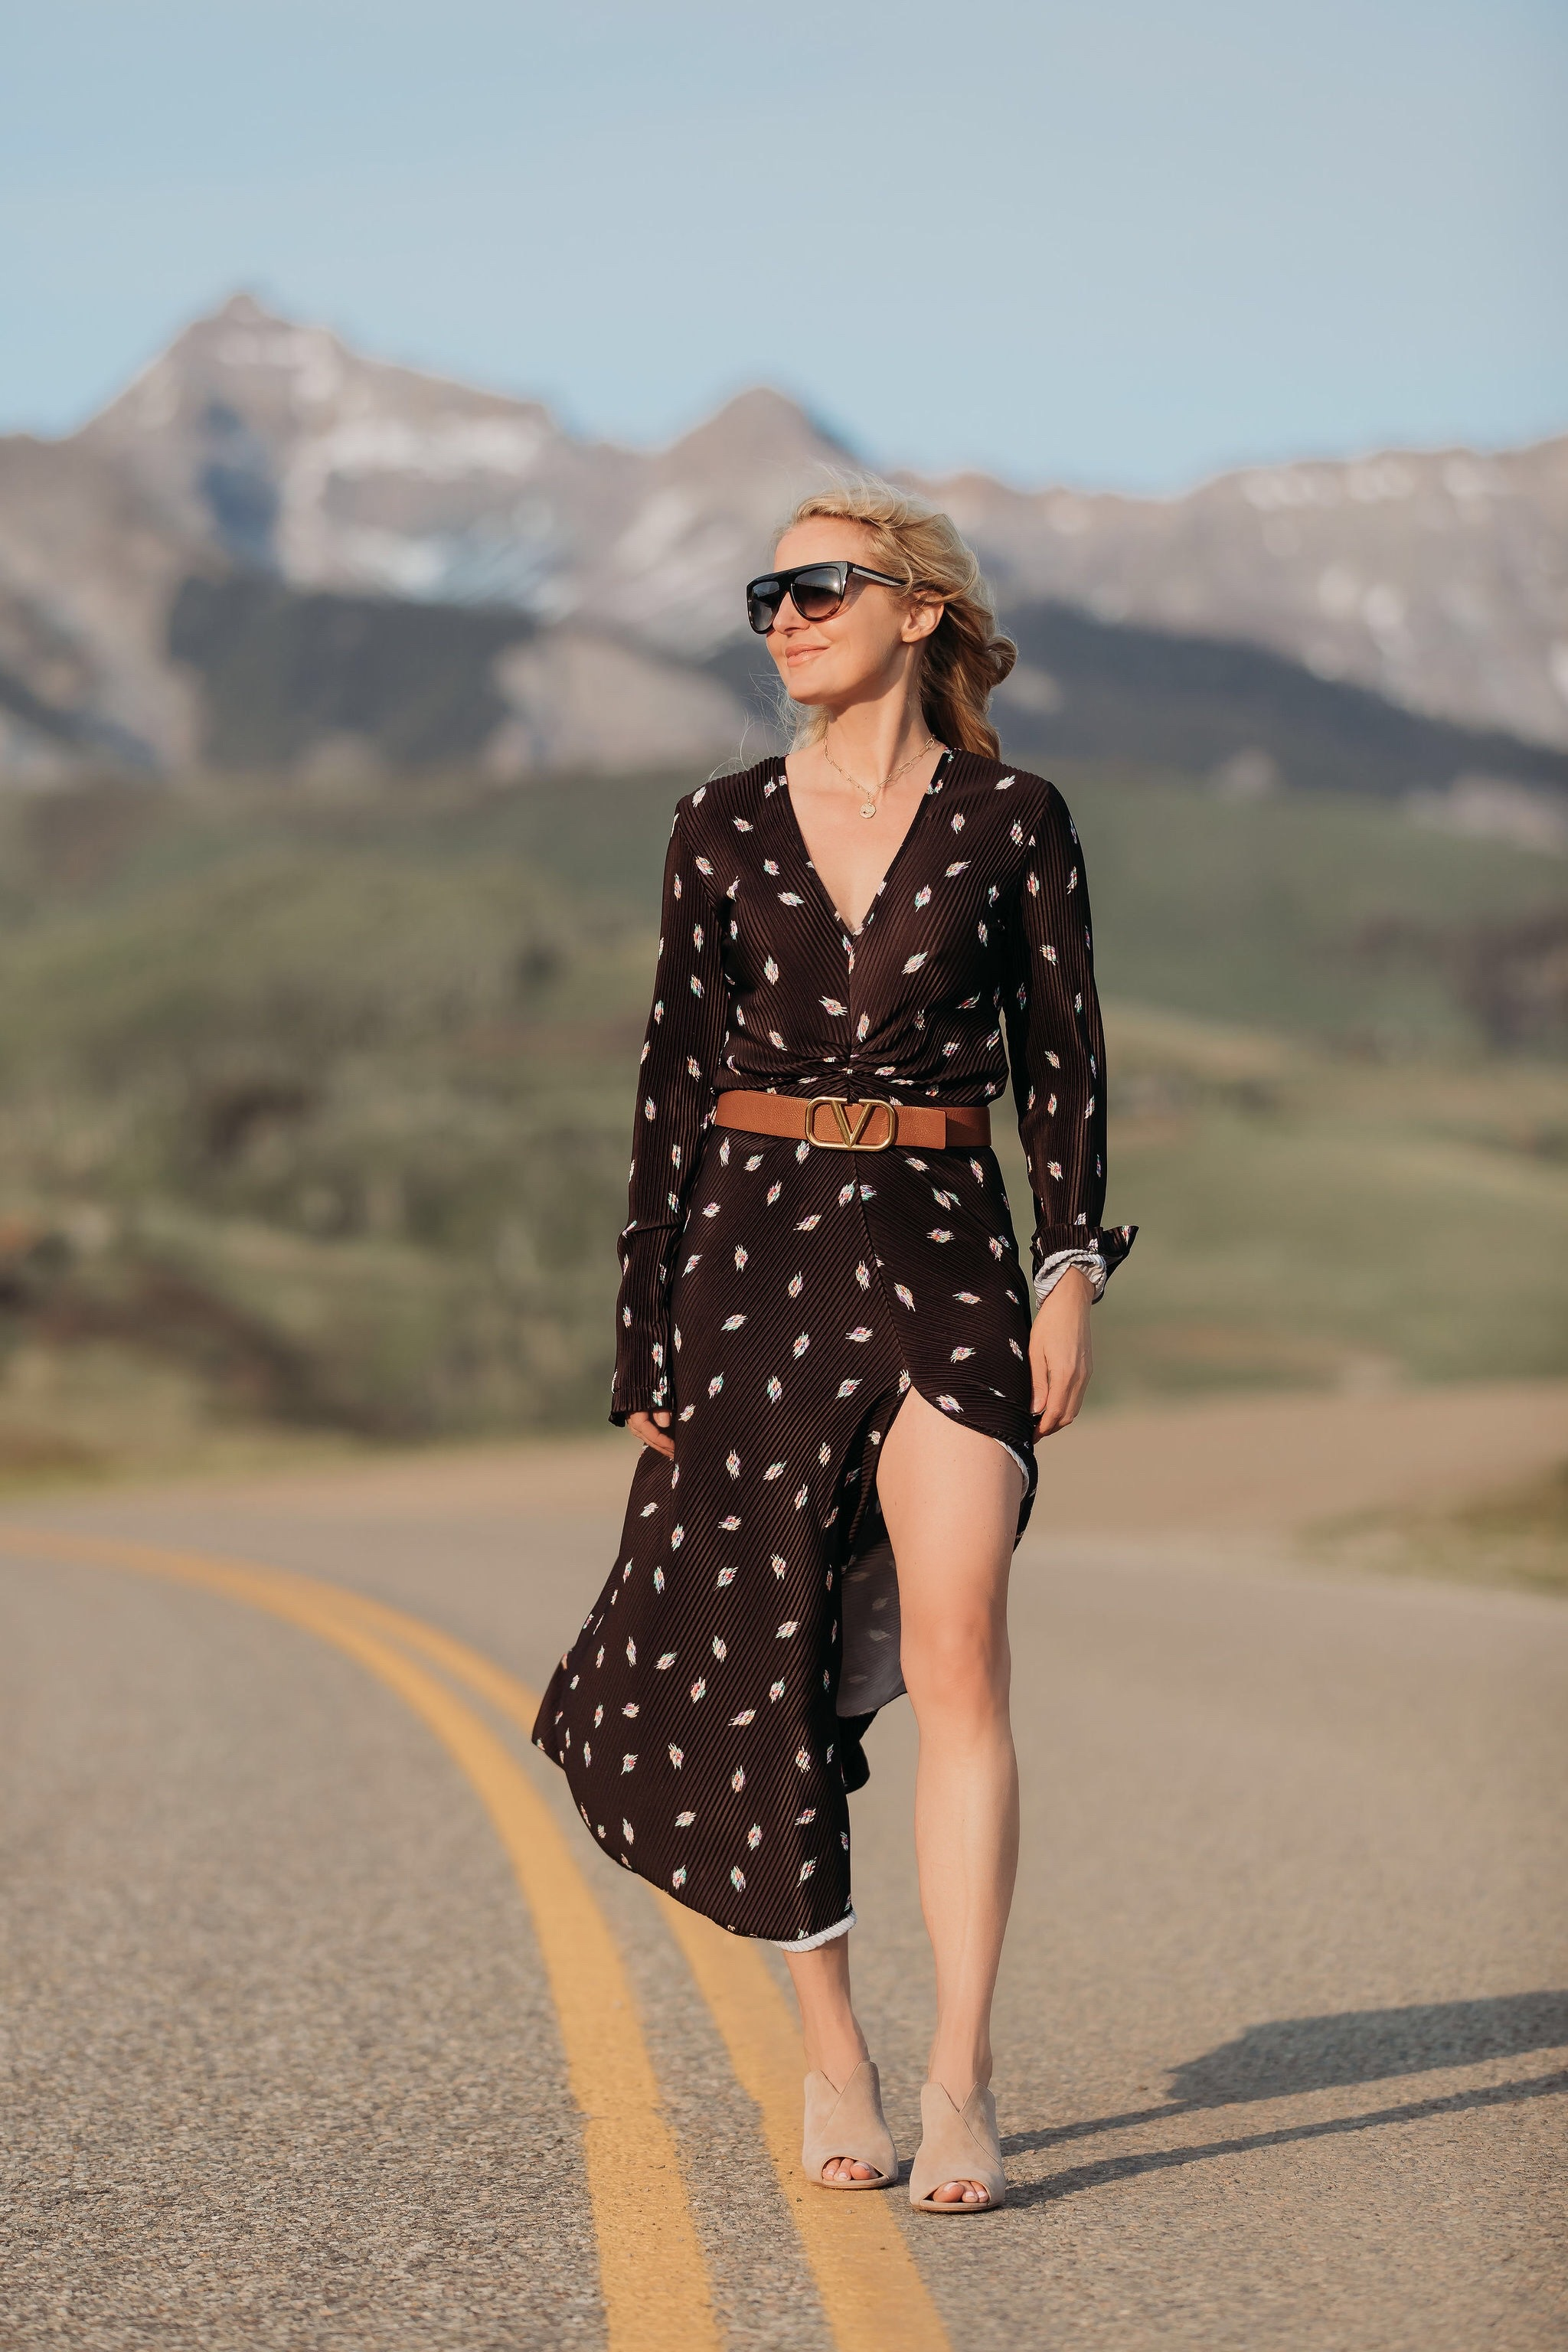 Black dress, fashion blogger Busbee Style wearing black printed Rotate dress with Valentino belt, nude Vince Camuto mules, and flat top sunglasses in Telluride, Colorado